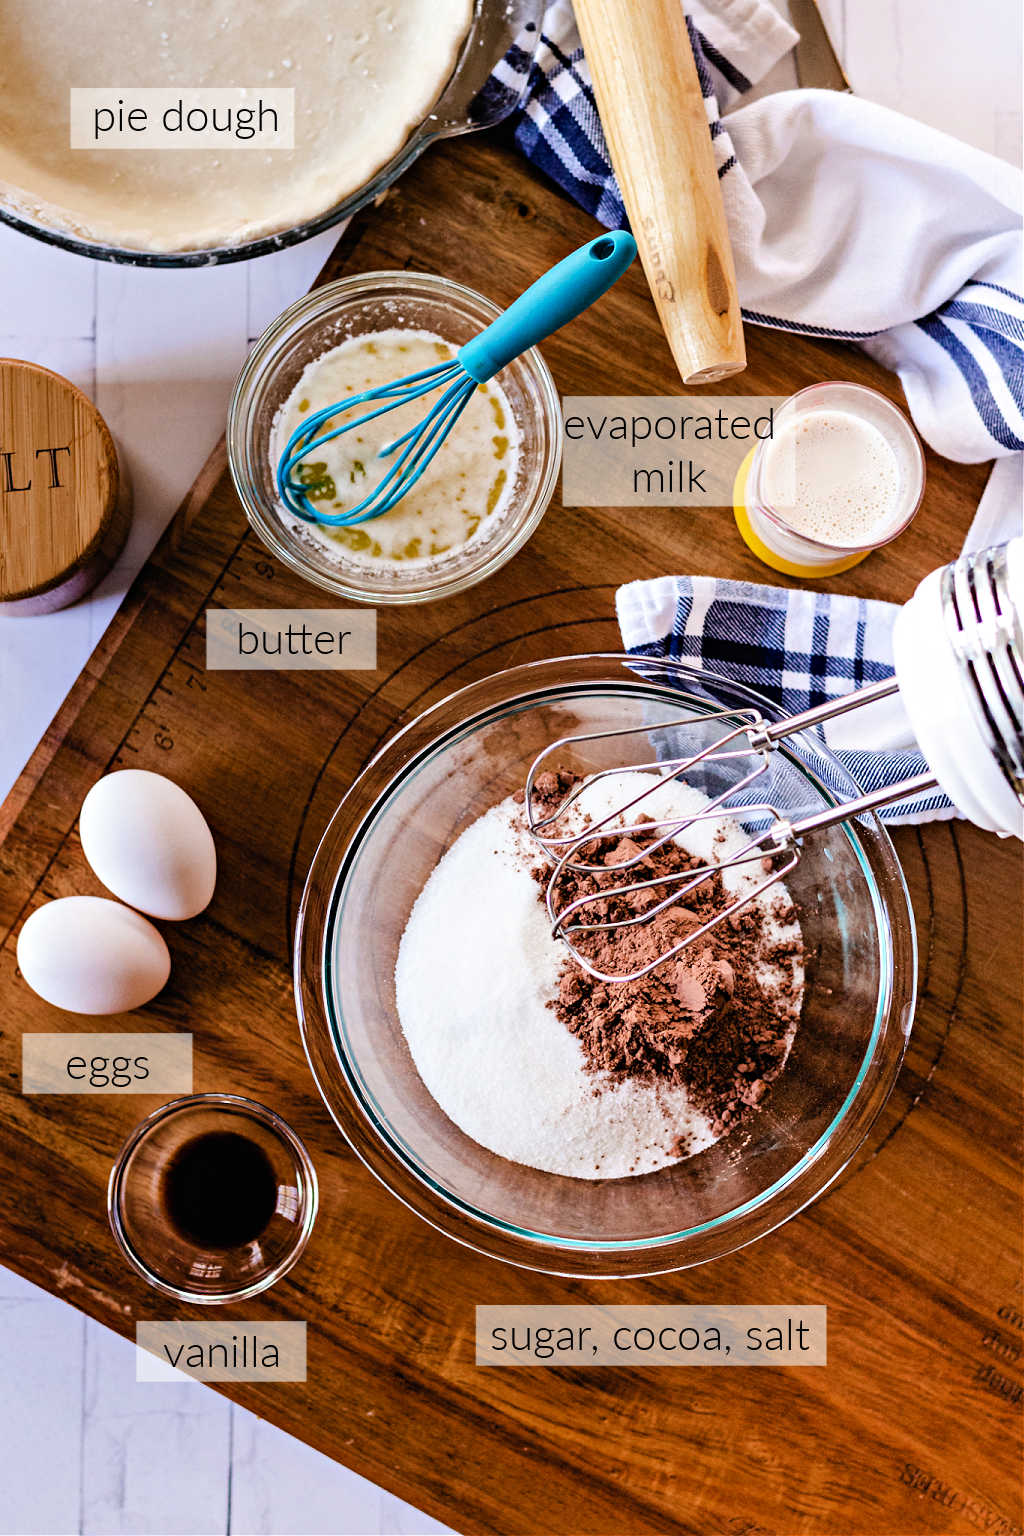 ingredients for chocolate chess pie.